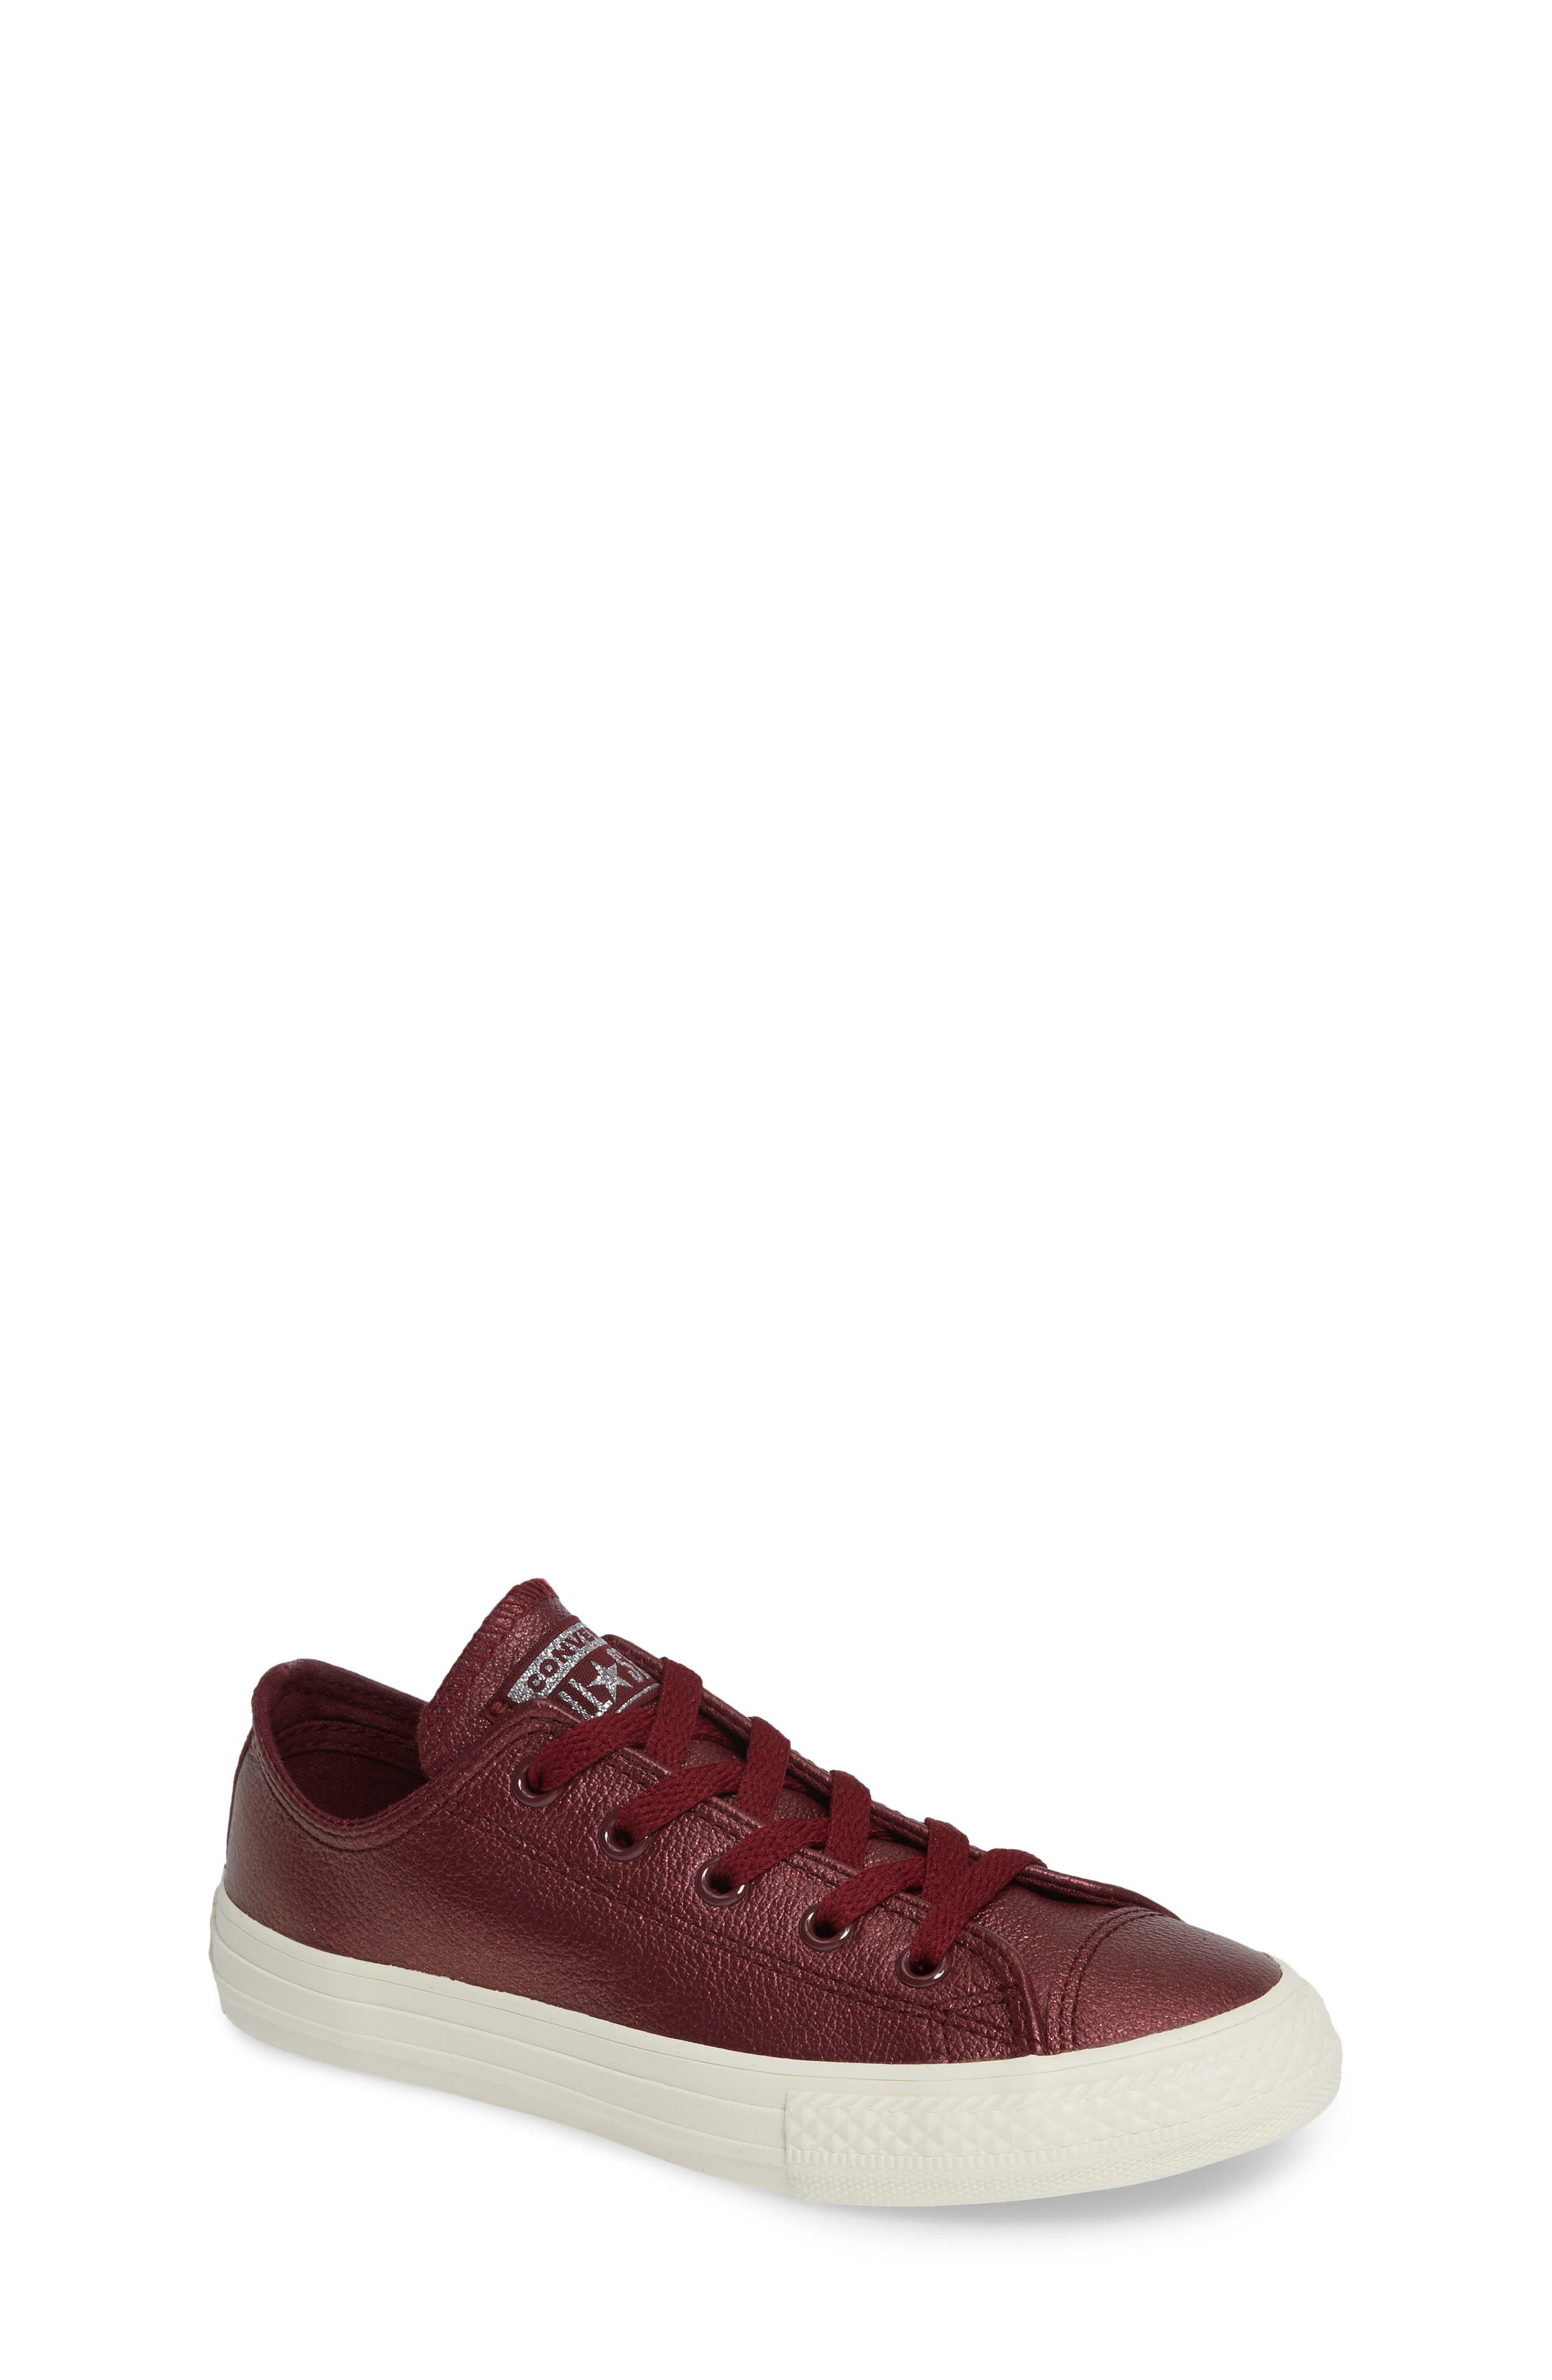 Chuck Taylor<sup>®</sup> All Star<sup>®</sup> Metallic Faux Leather Ox Sneaker,                             Main thumbnail 1, color,                             DARK BURGUNDY